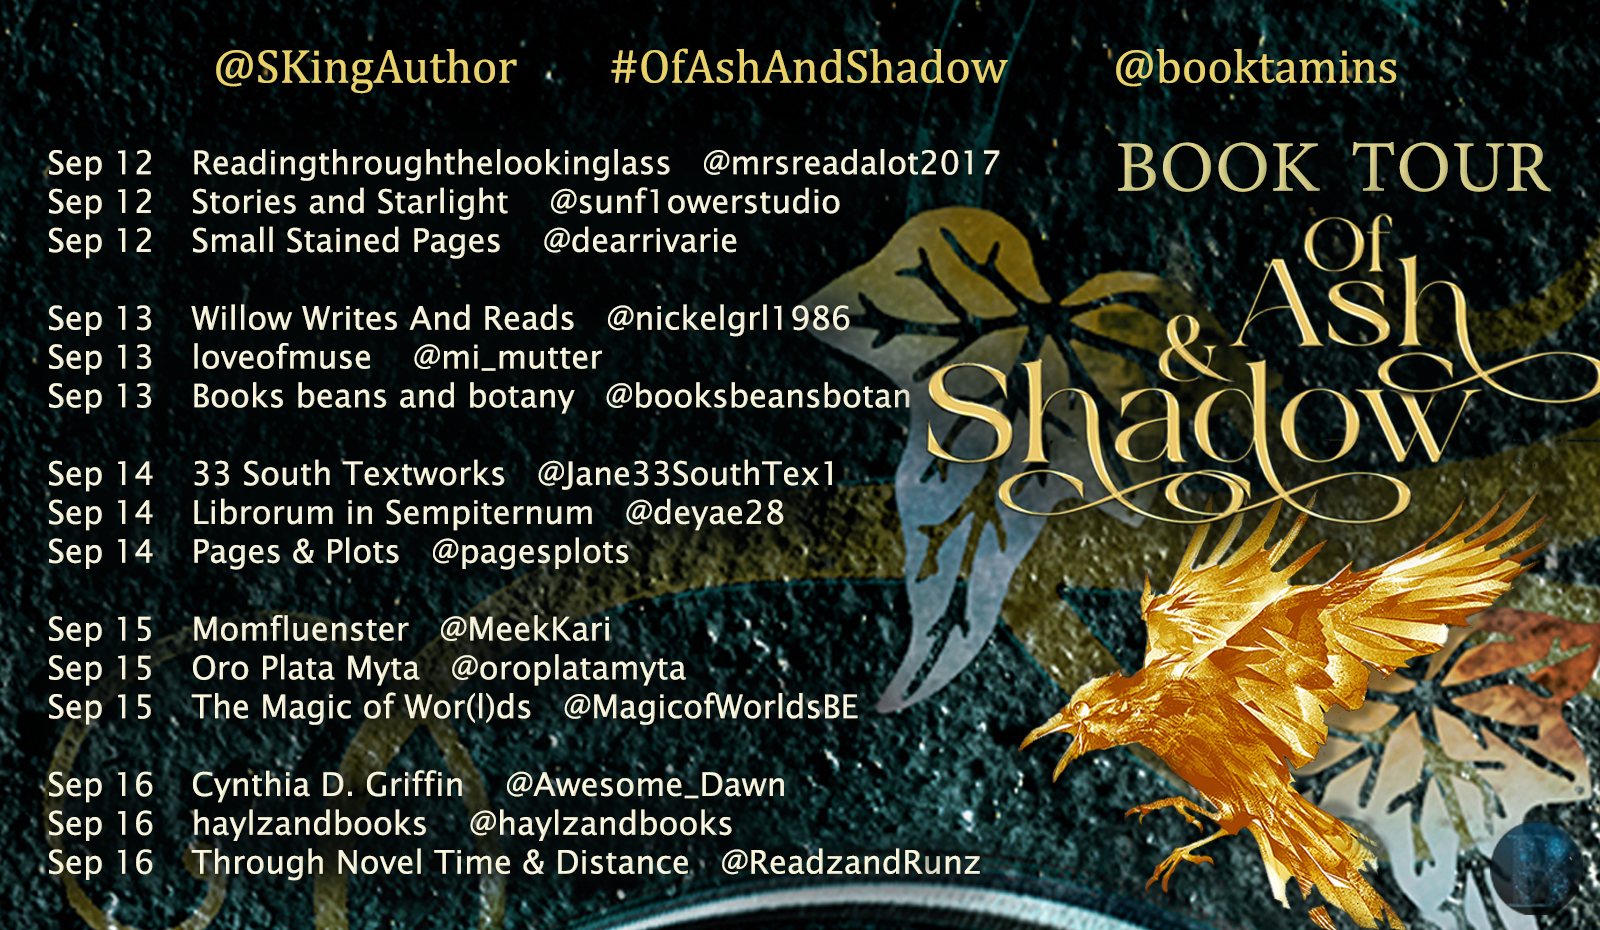 Of Ash & Shadow Blog Tour